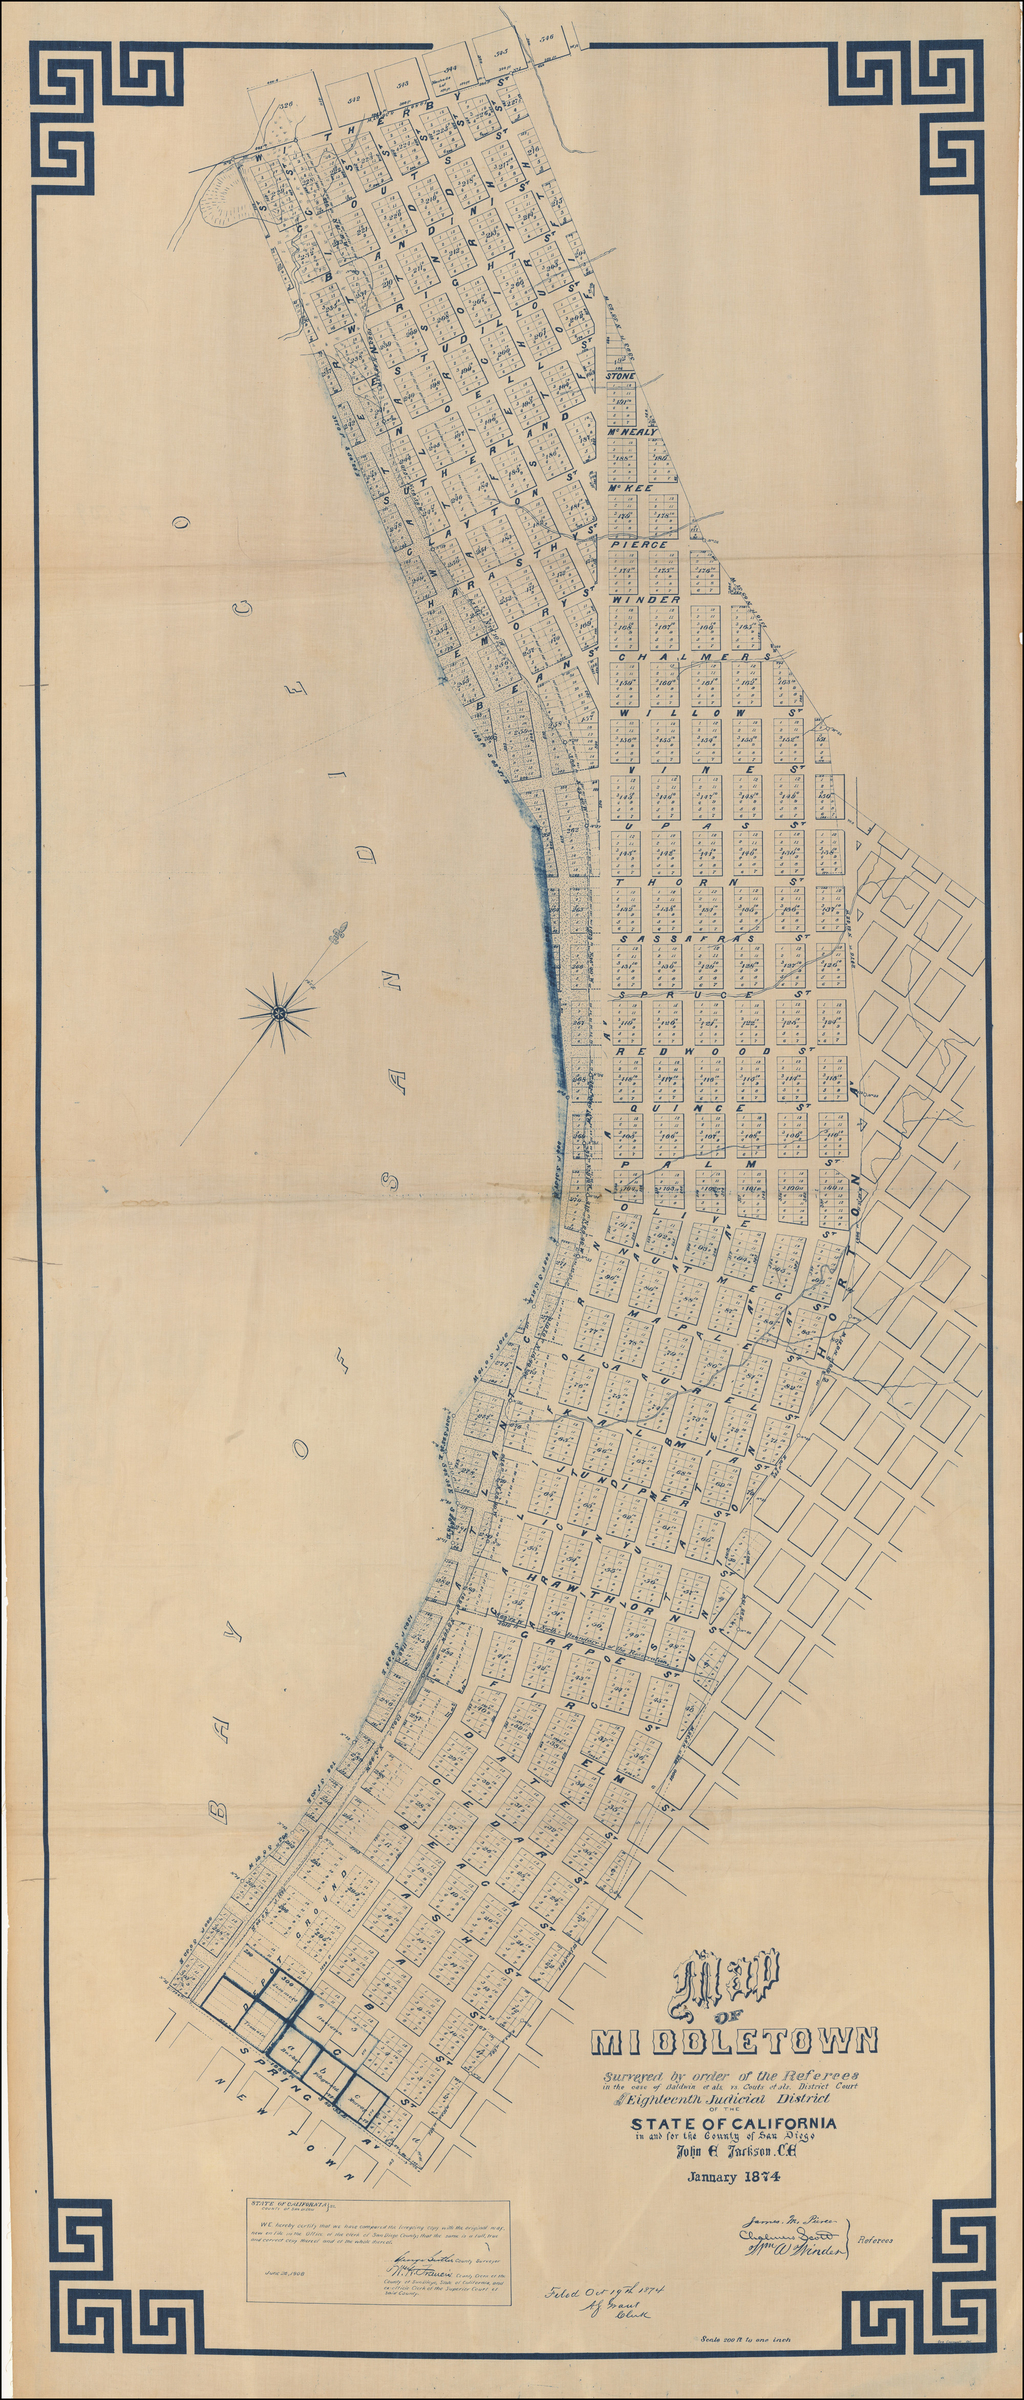 (San Diego) Map of Middletown Surveyed by order of the Referees in the case of Baldwin et als. vs. Couts et als. . . . John E. Jackson, C.E. January 1874. By John E. Jackson